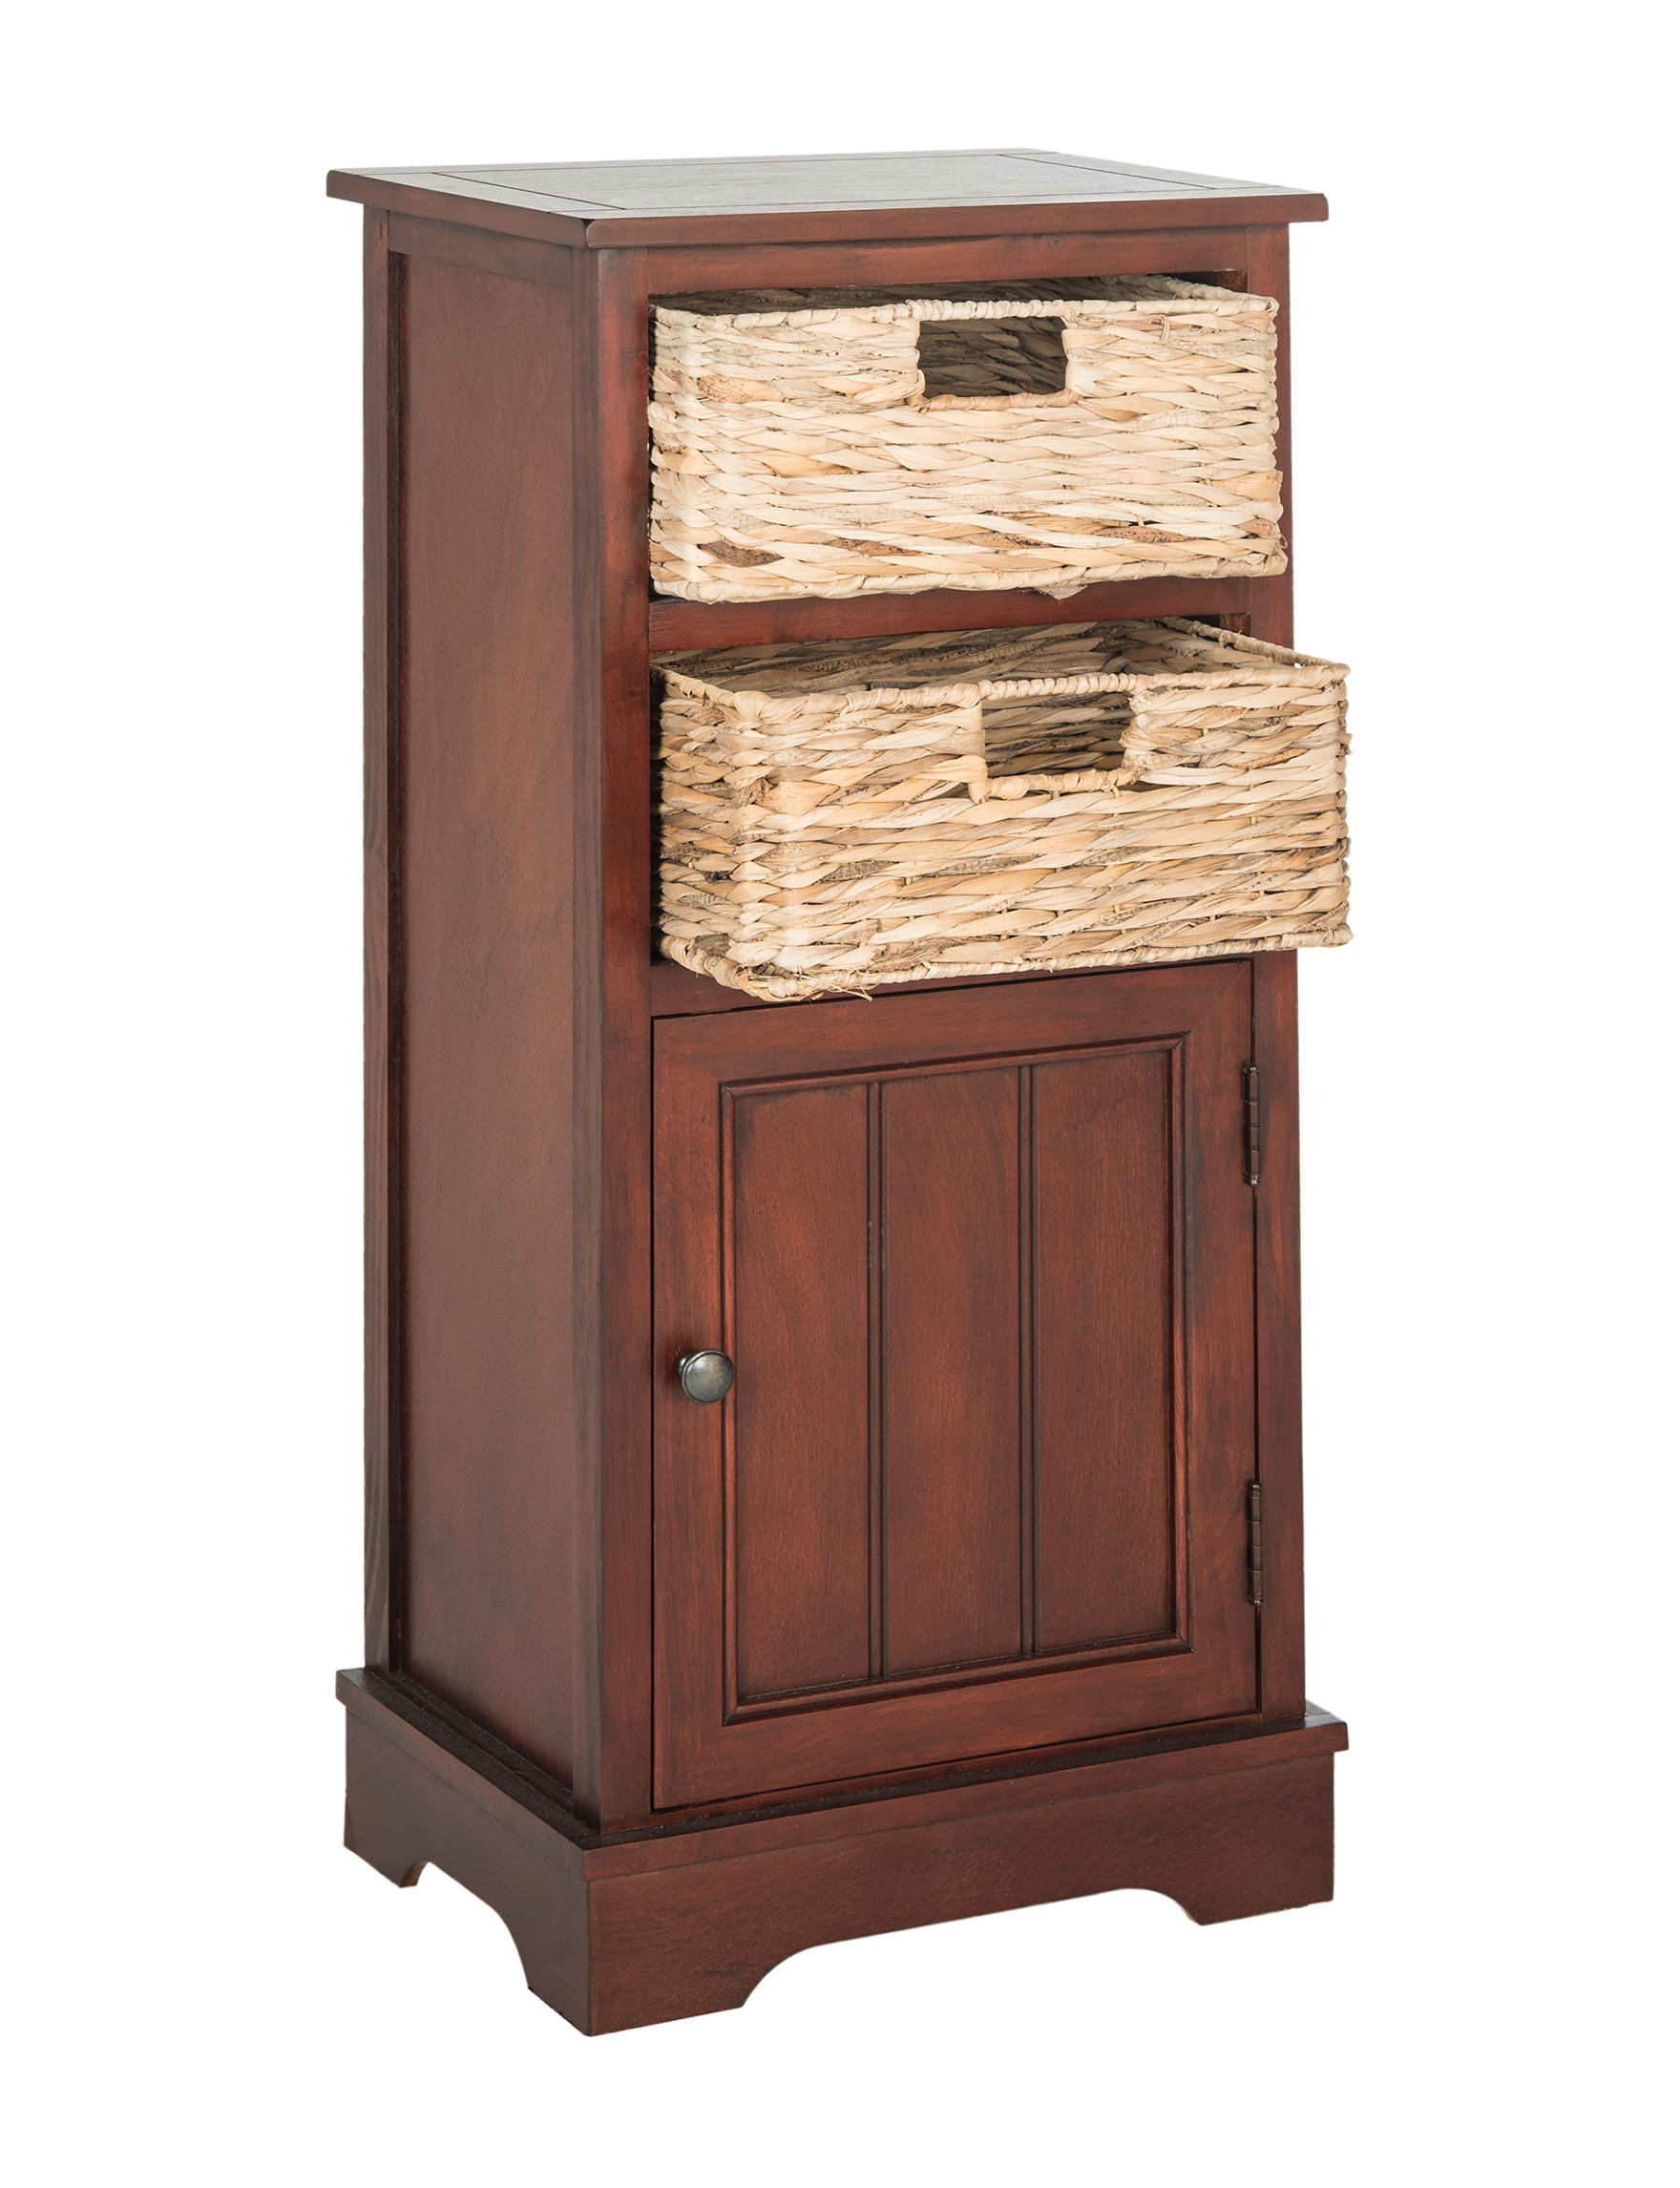 Safavieh Cherry Finish Cabinets & Cupboards Living Room Furniture